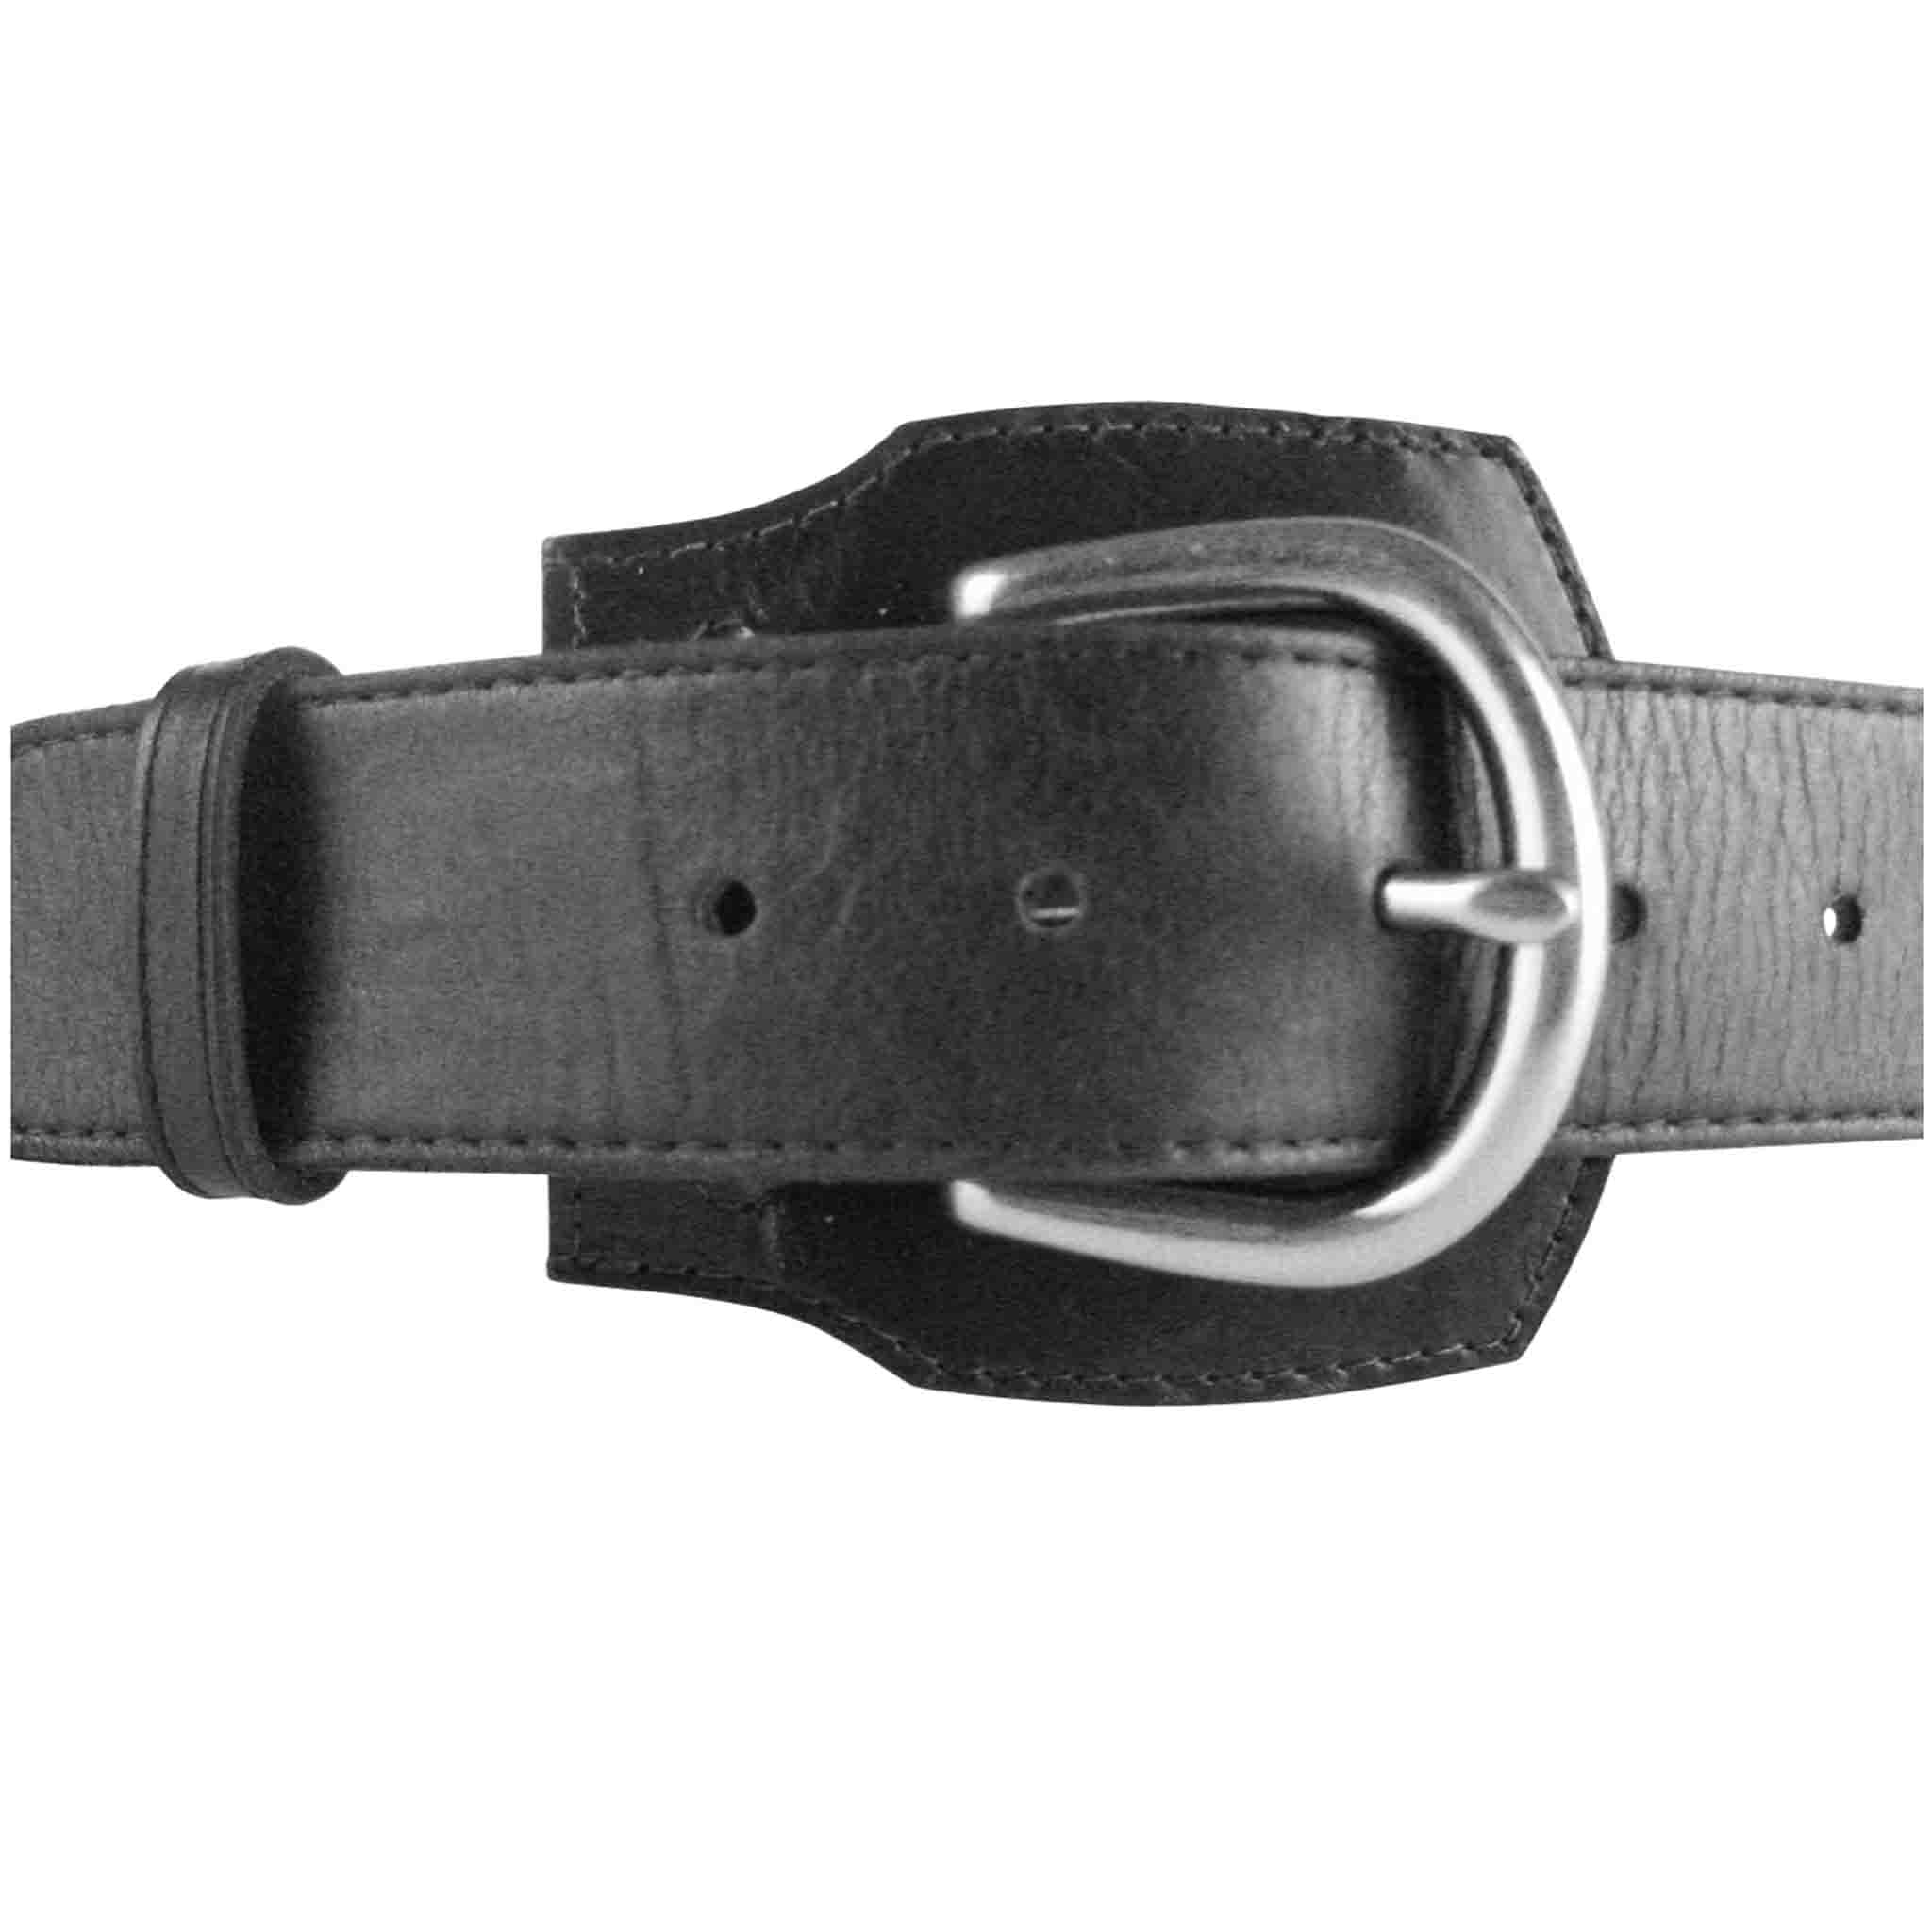 BLACK LEATHER BELT MEN'S RUCKEN